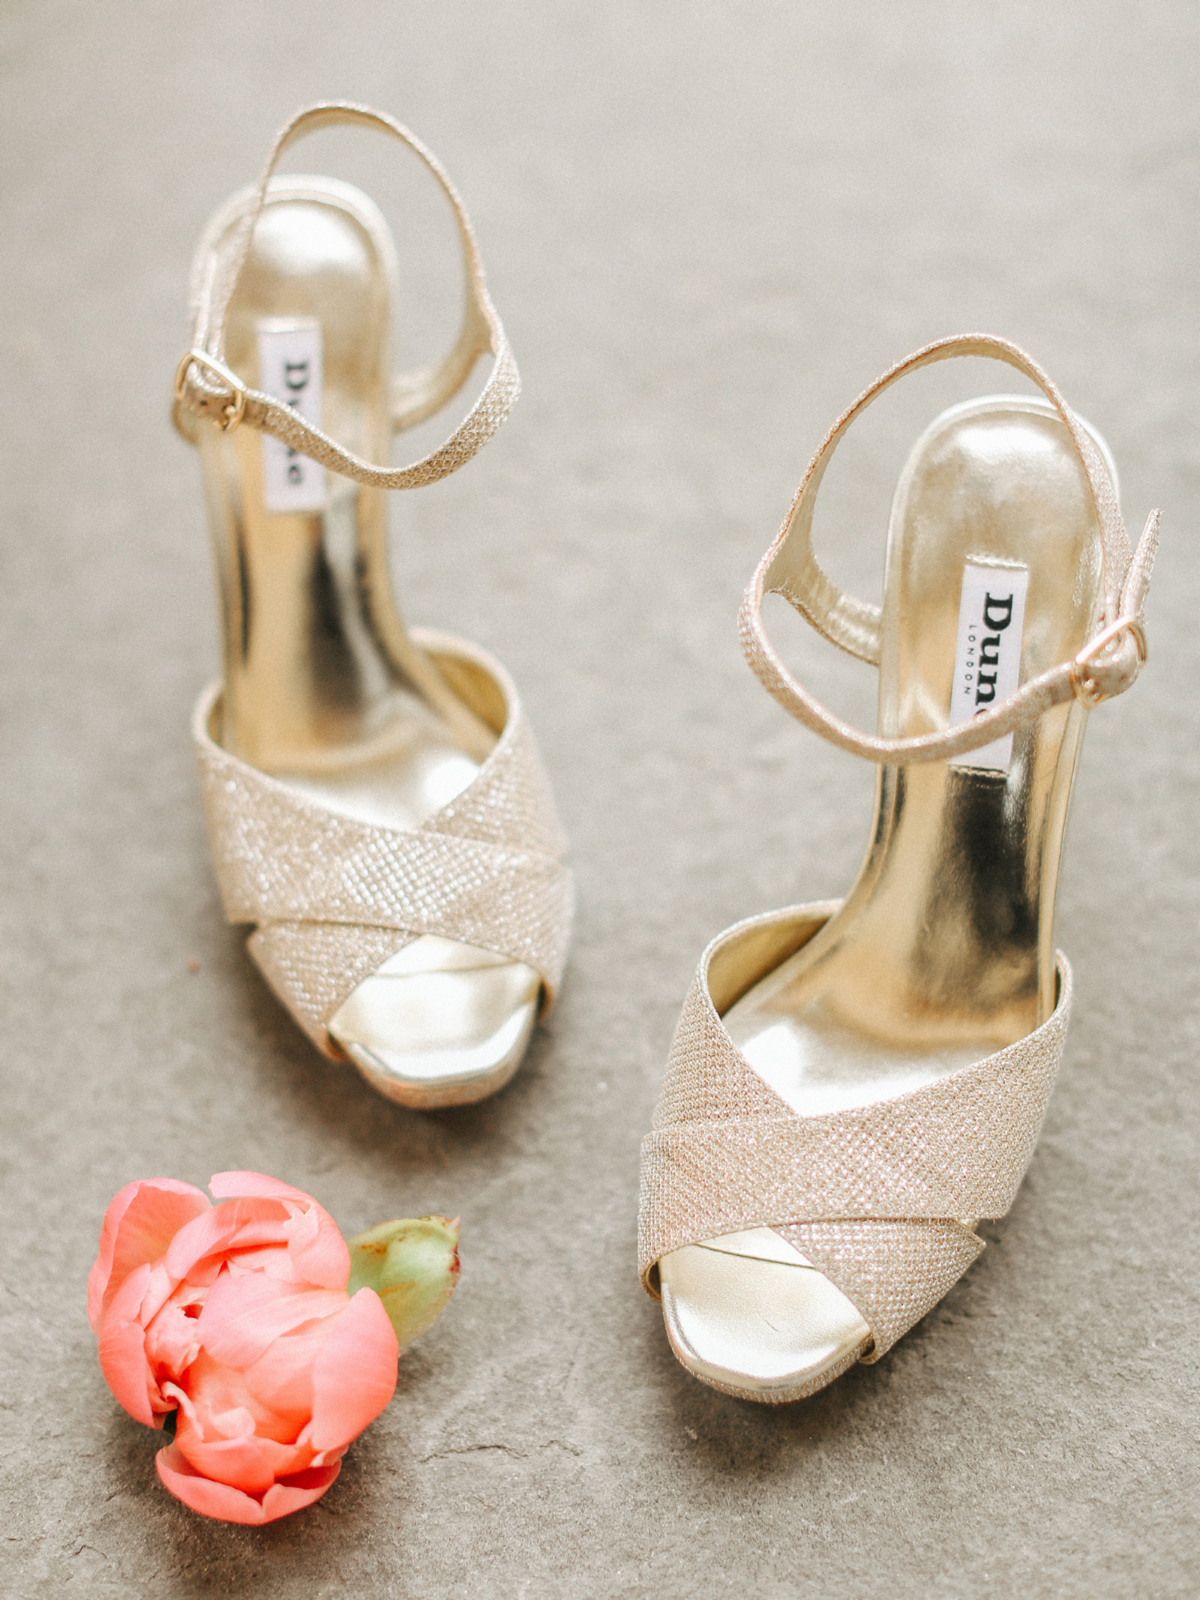 Dune open toe gold high heel wedding shoes - A Caroline Castigliano Gown for a Chic and Classic Manor House Wedding in Shades of Peach